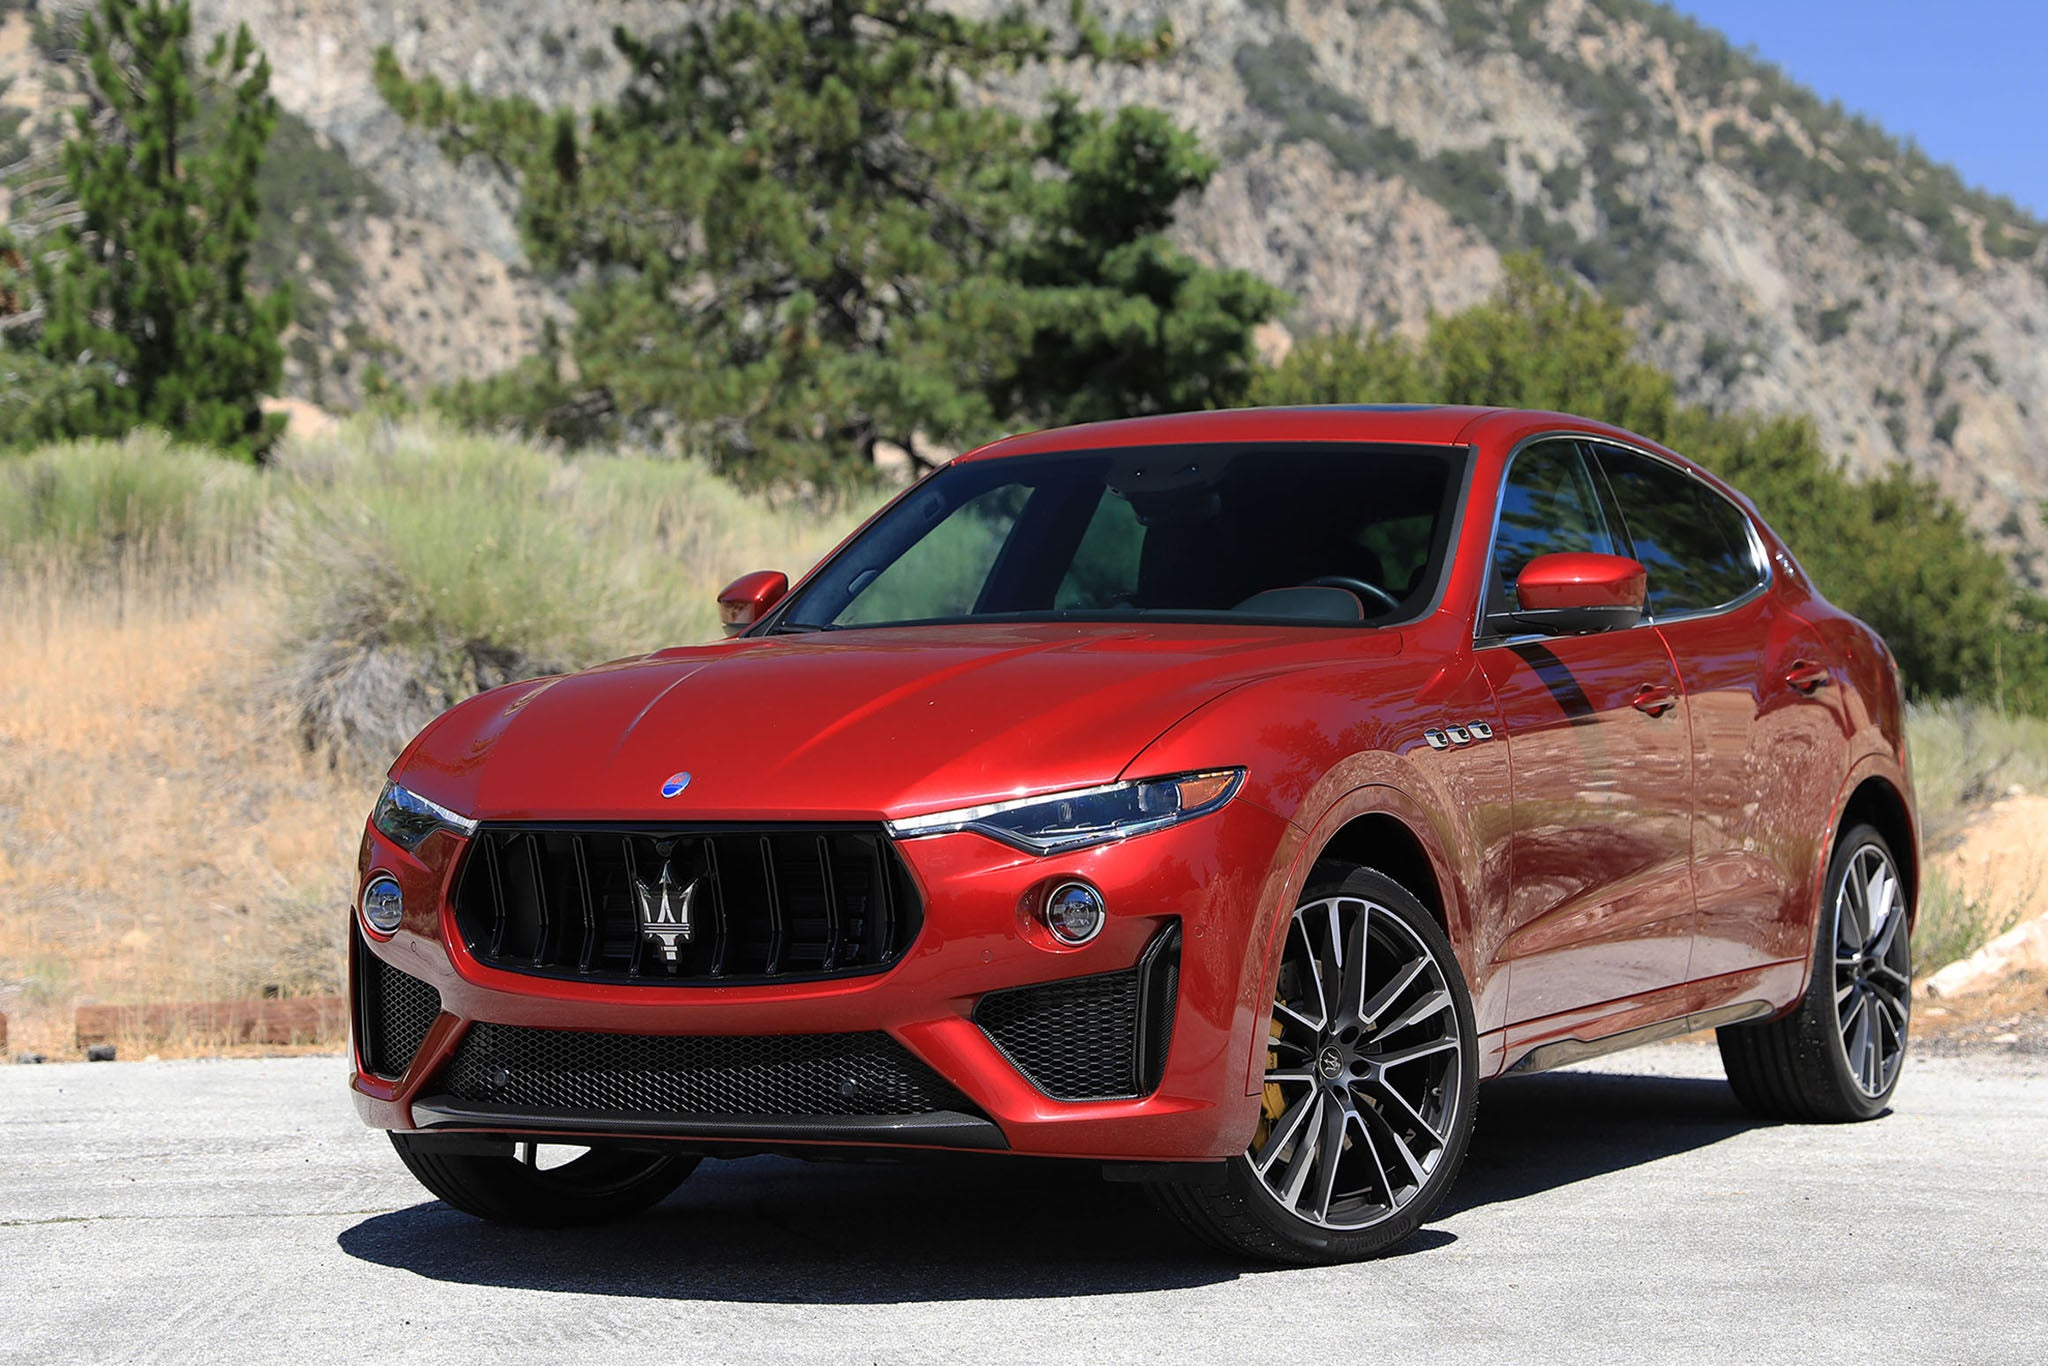 The 2020 Maserati Levante Trofeo Review The Italian Trackhawk For Better Or Worse